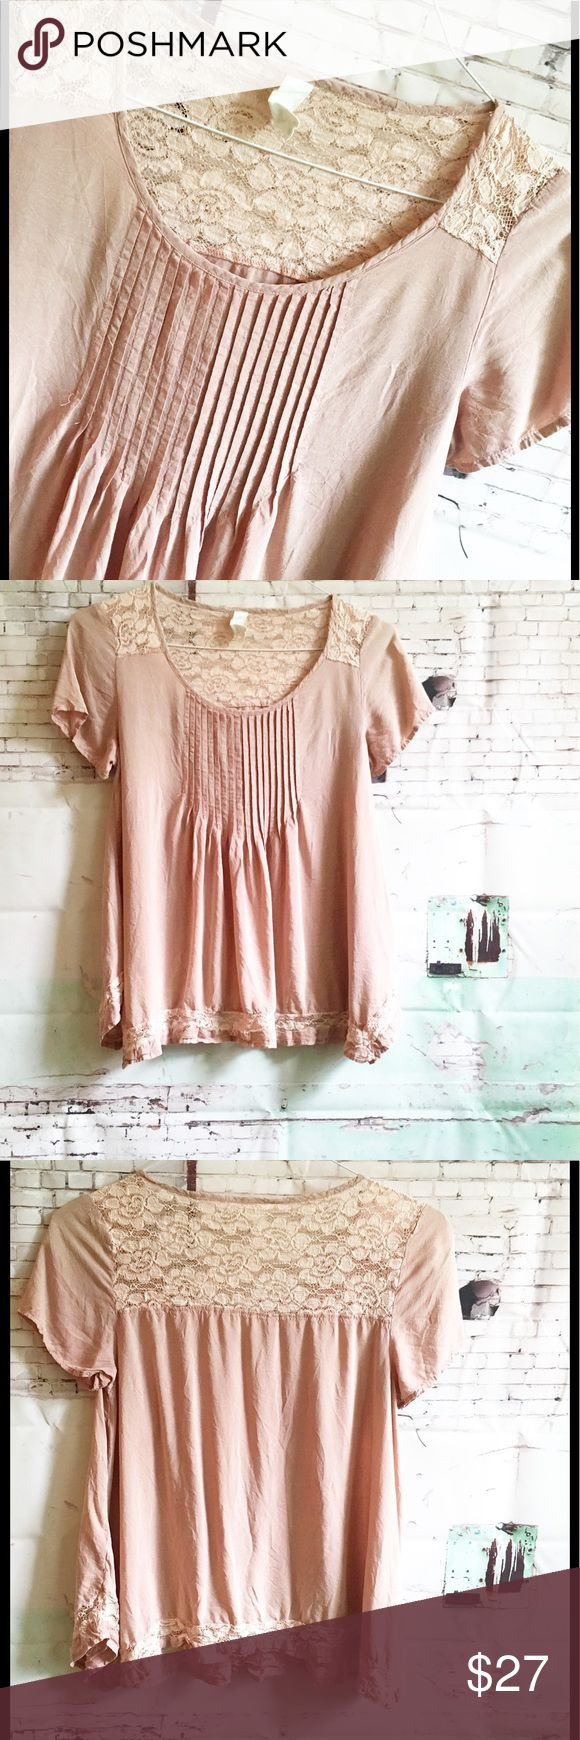 "Pintucked Short Sleeve Top PALE PINK Smock Top Unknown brand and Size Three quarter sleeve button up.  Lace panel down the front.  Underarm to underarm is 22"" and top is 22"" long.  Guessing it to be M/L Unknown Tops"